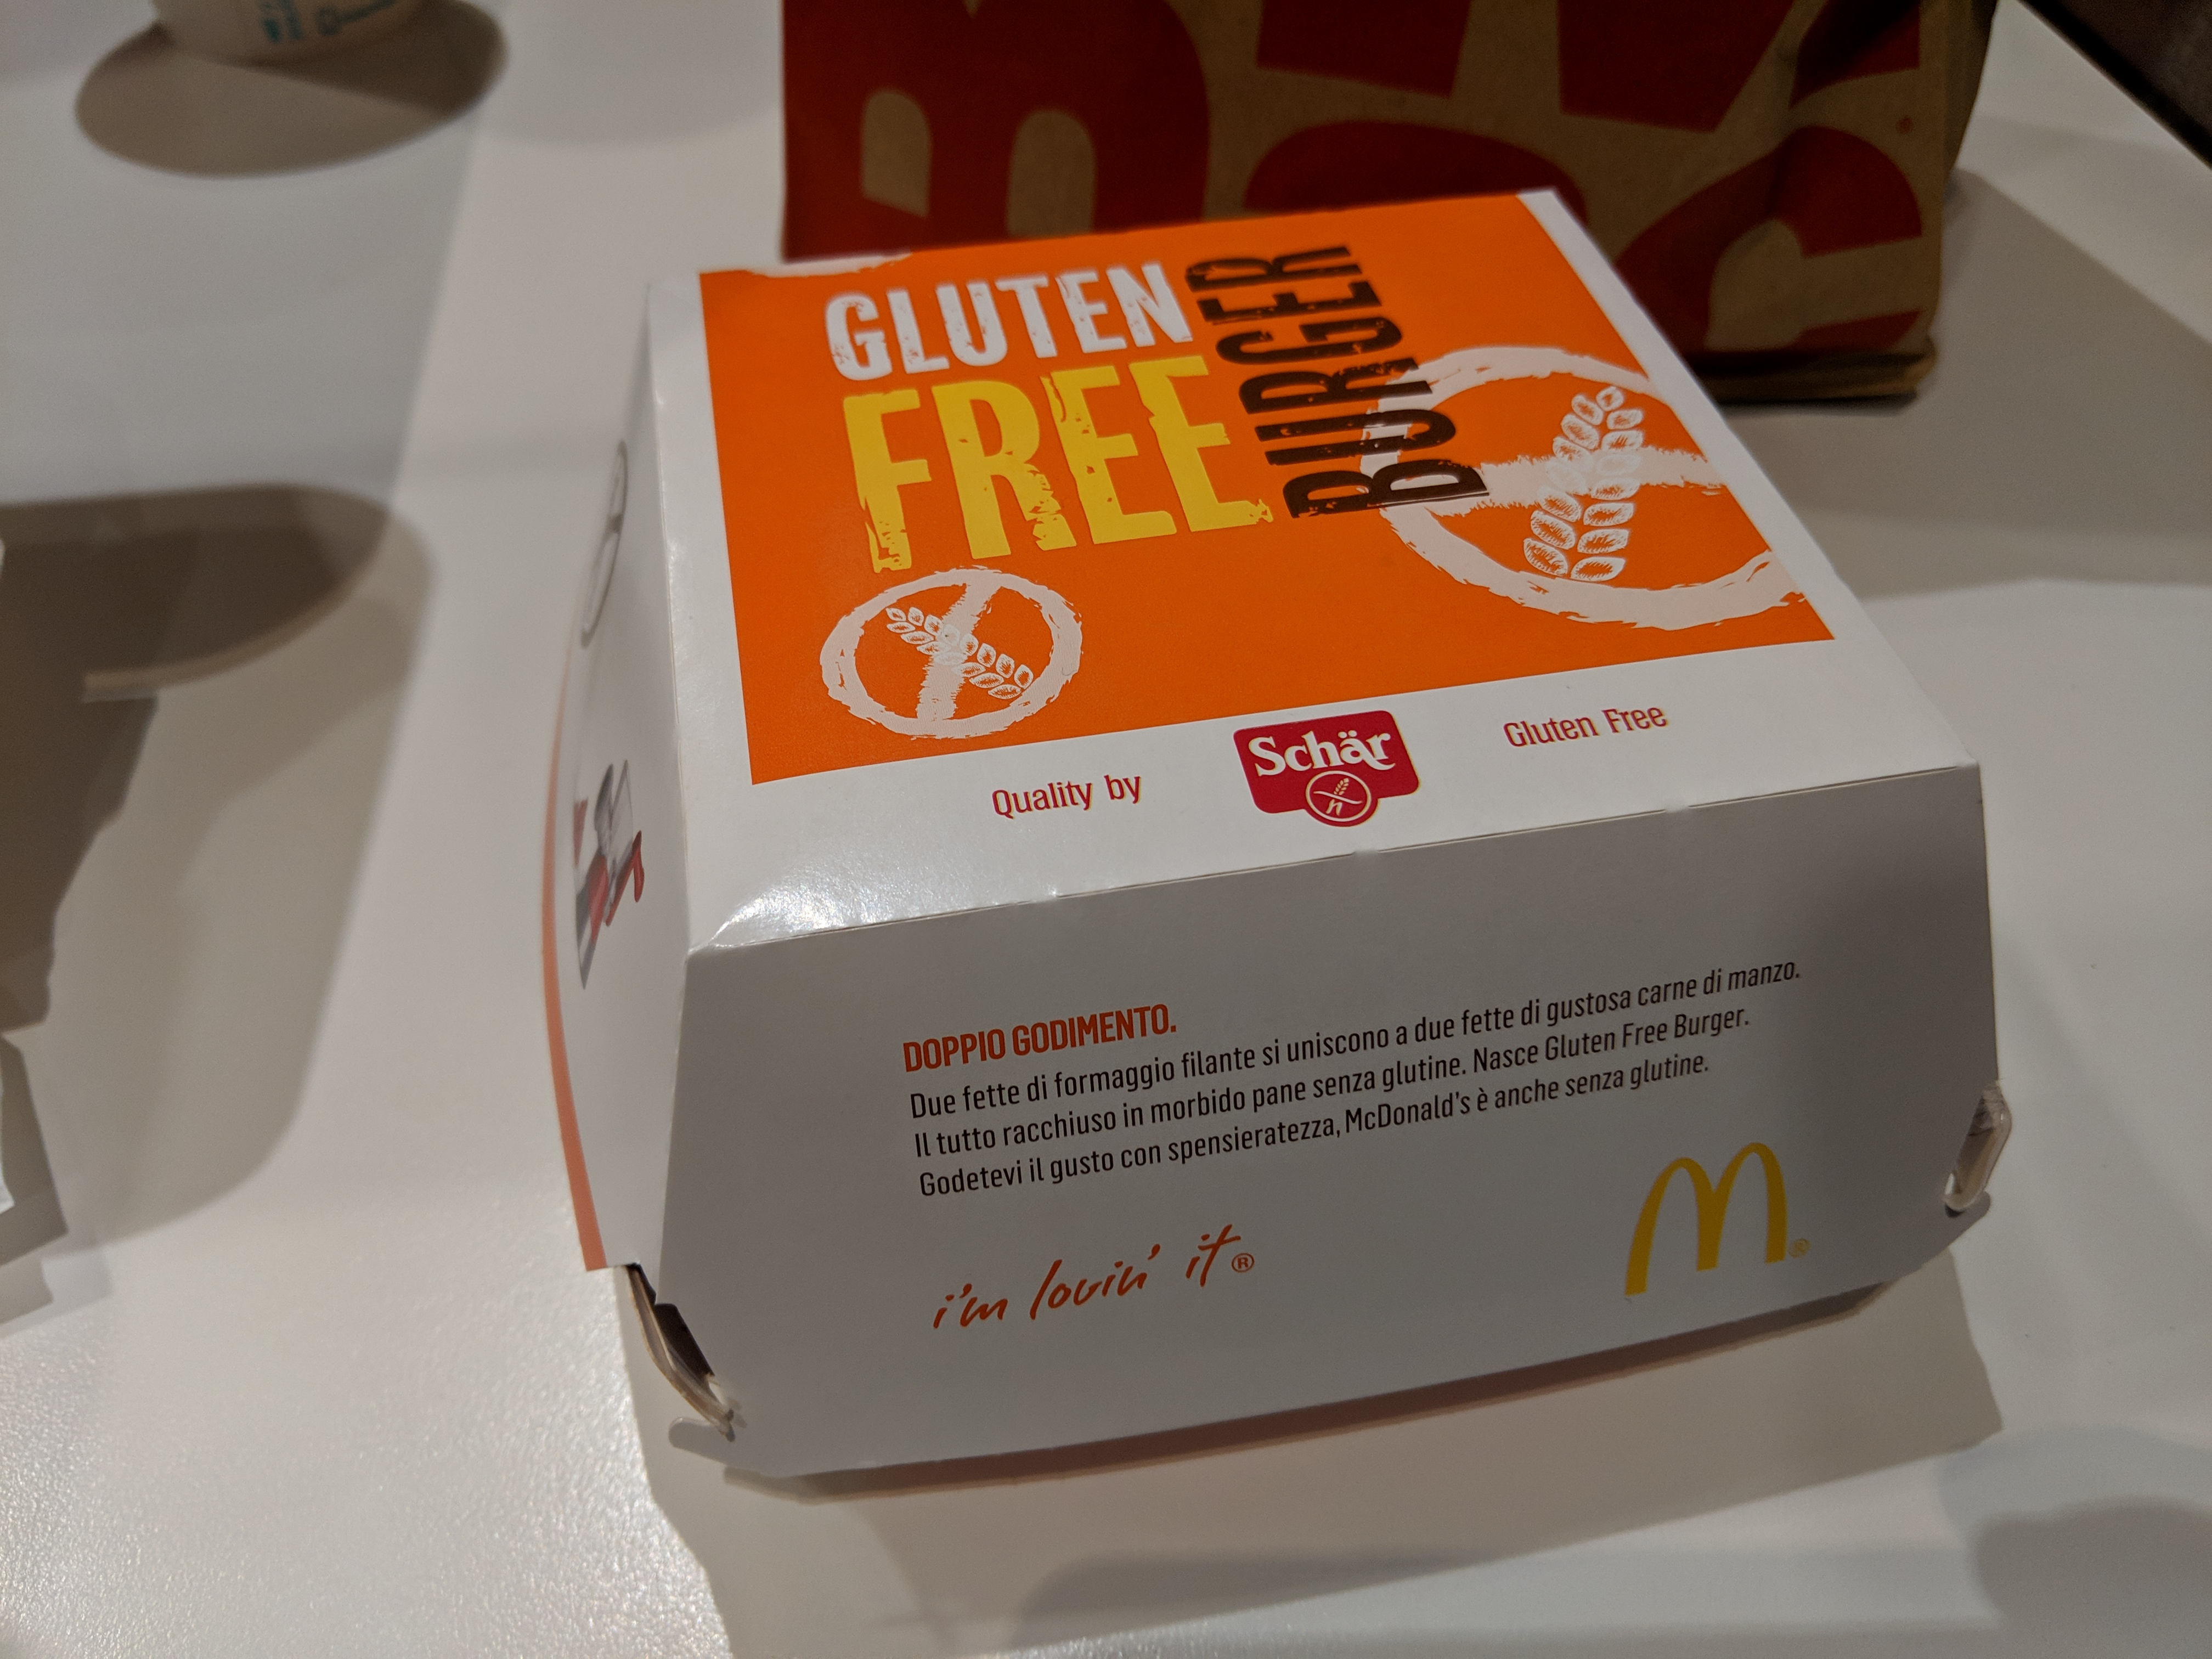 In Italy, you can get a gluten-free burger at McDonald's